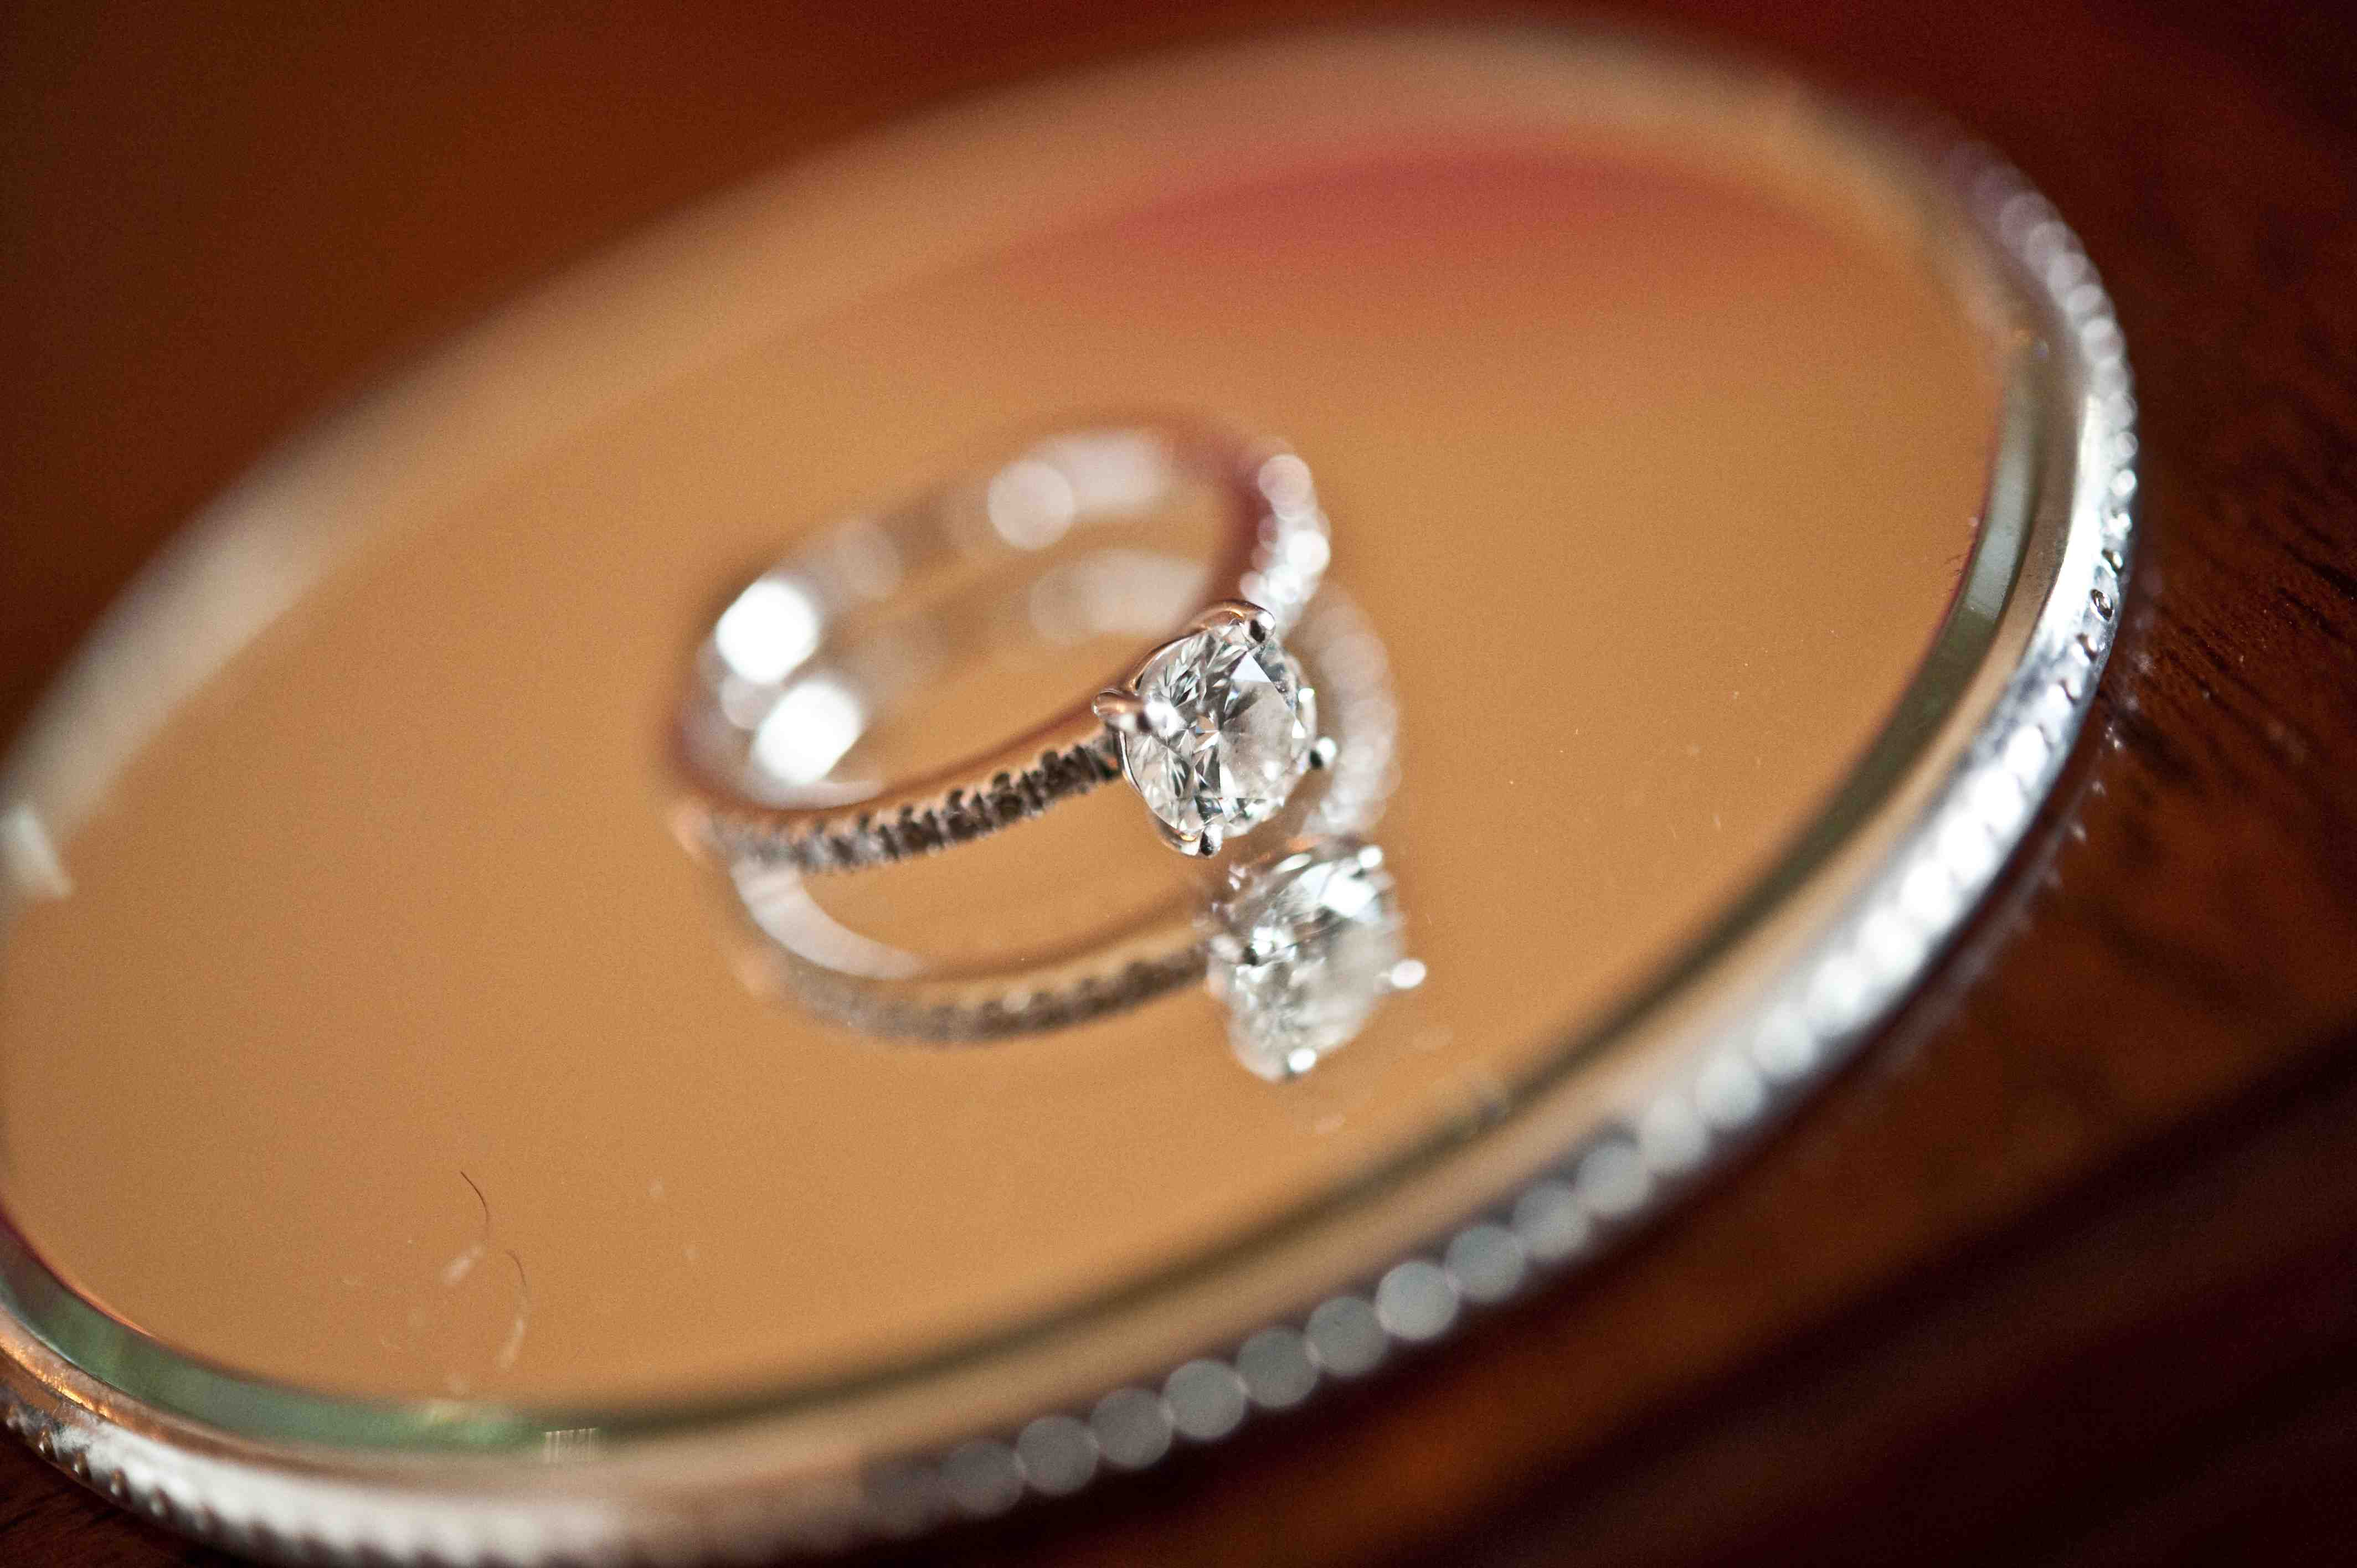 laura prepon engagement ring inspiration, round brilliant diamond, four prong, pave band